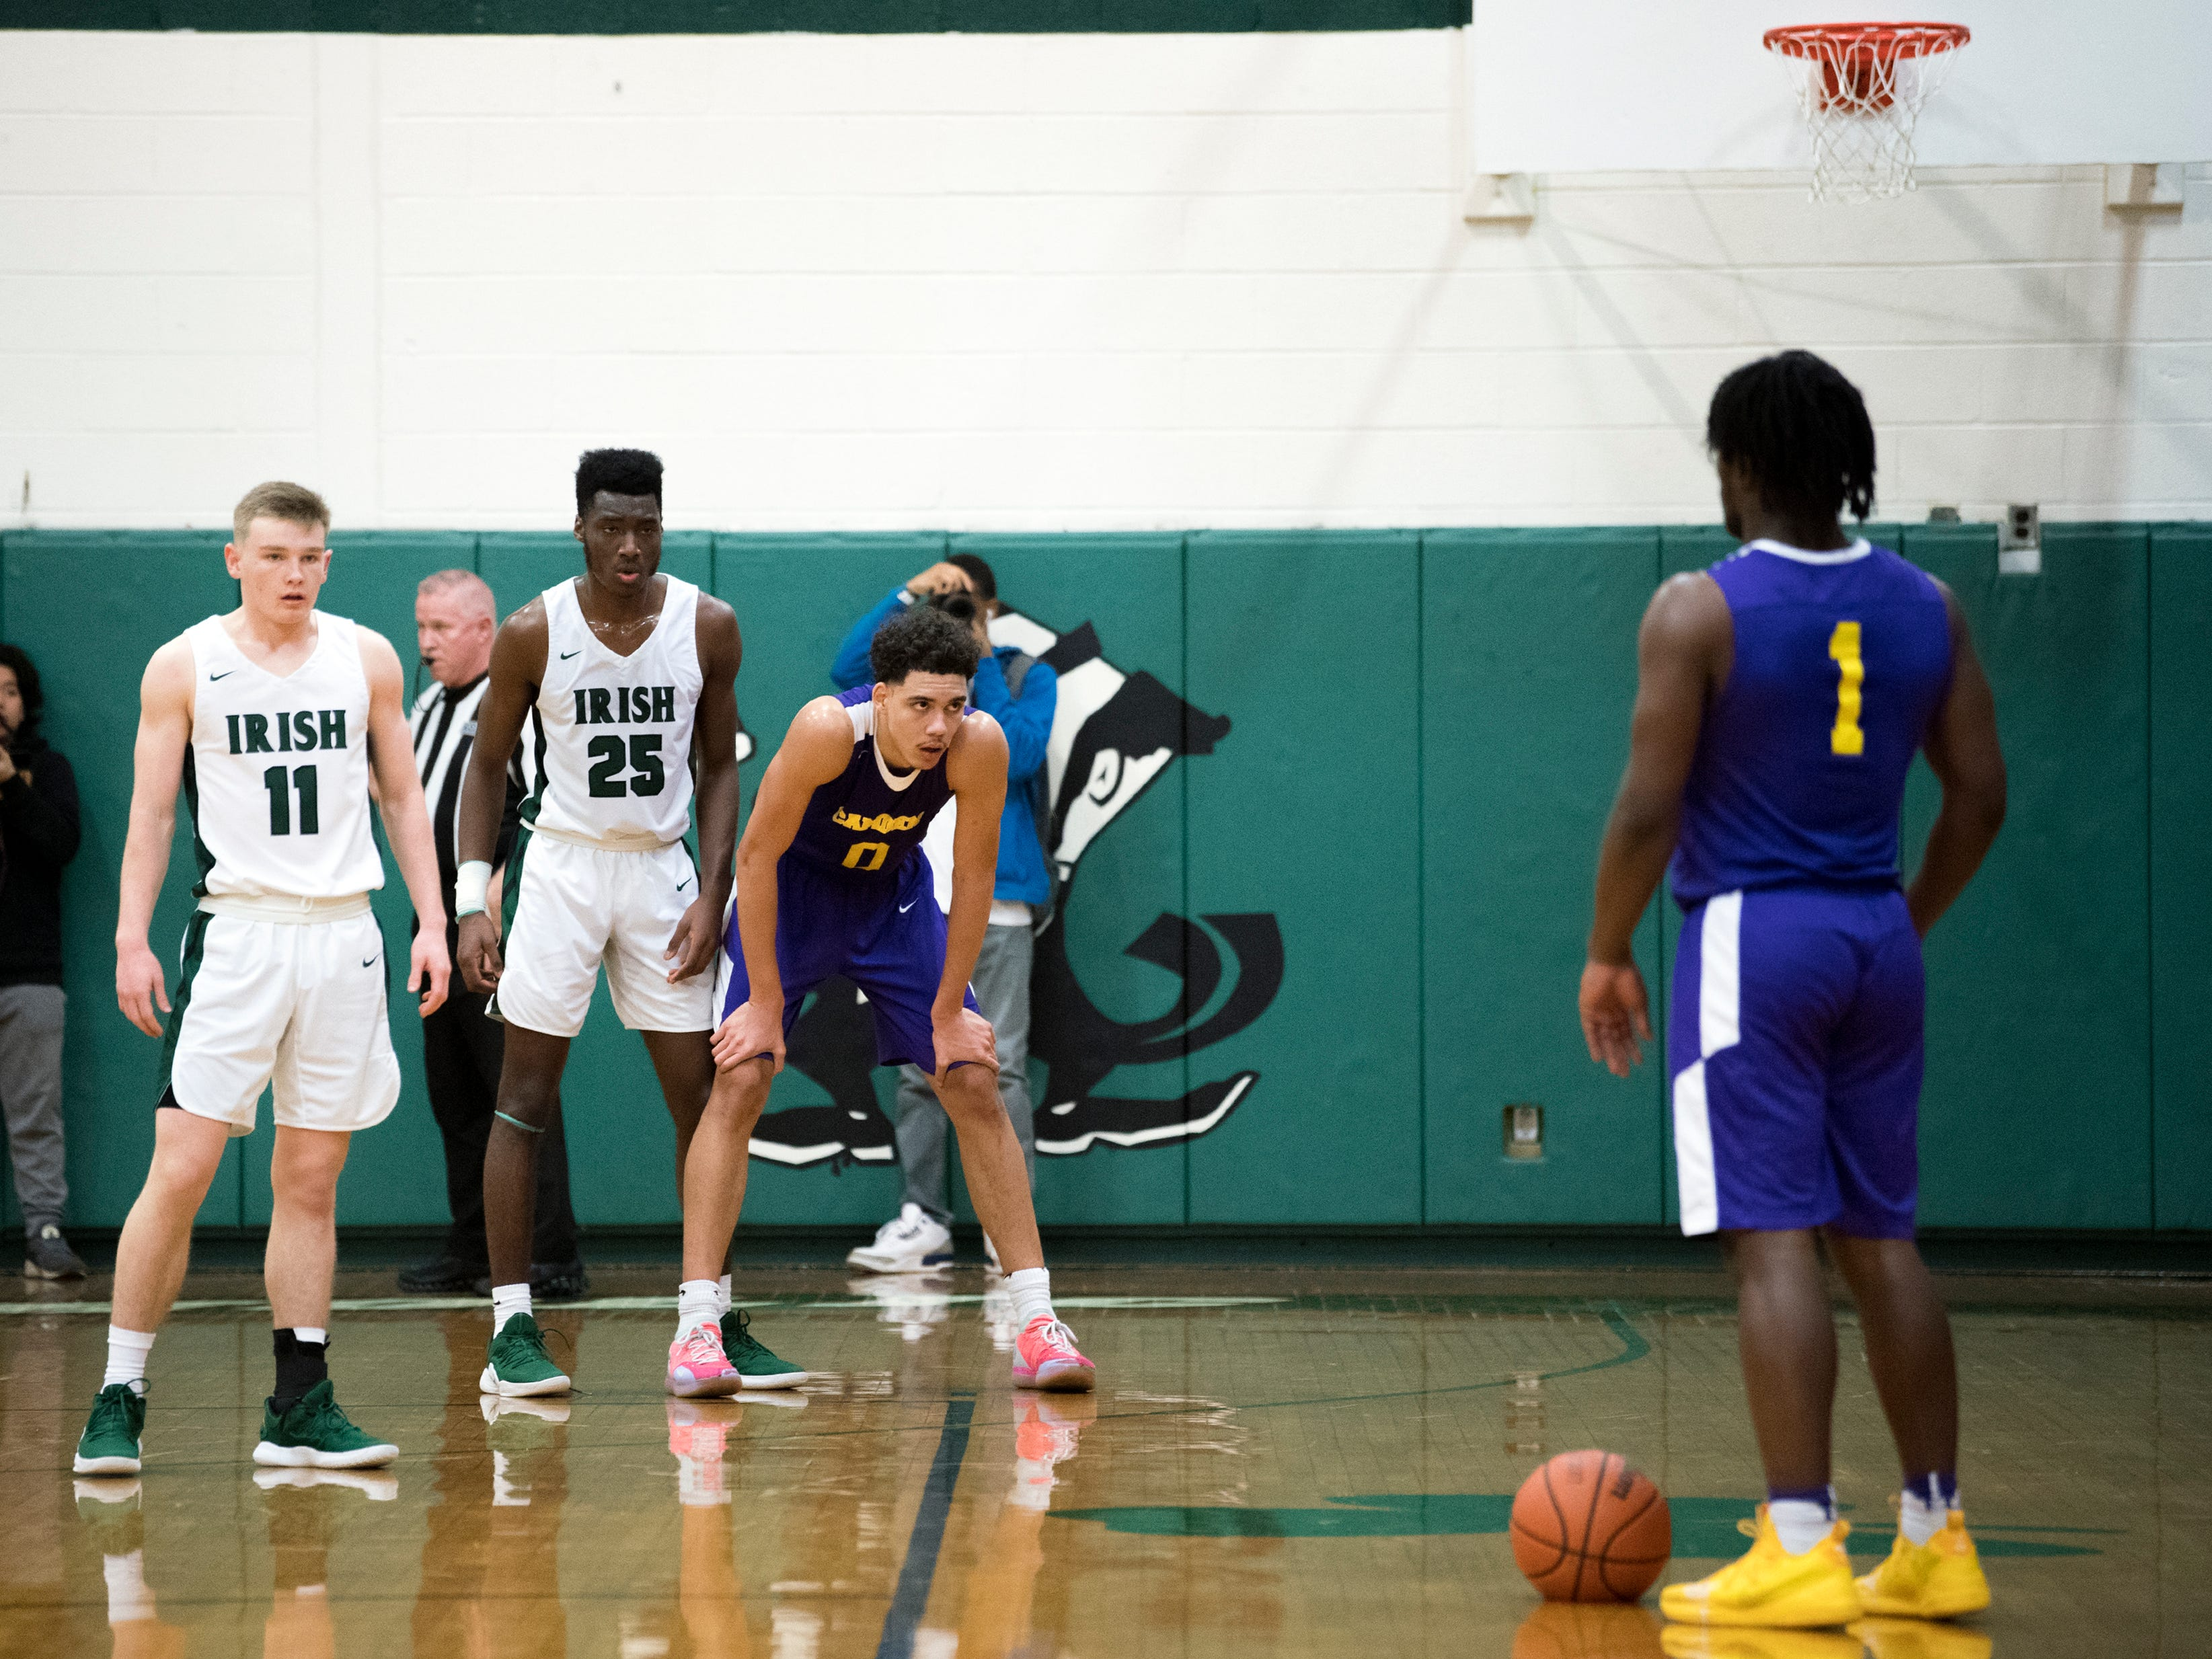 Camden's Ethan Tarte (1) dribbles before making a play against Camden Catholic Thursday, Feb. 21, 2019 at Camden Catholic High School in Cherry Hill, N.J. Camden Catholic won 57-54.